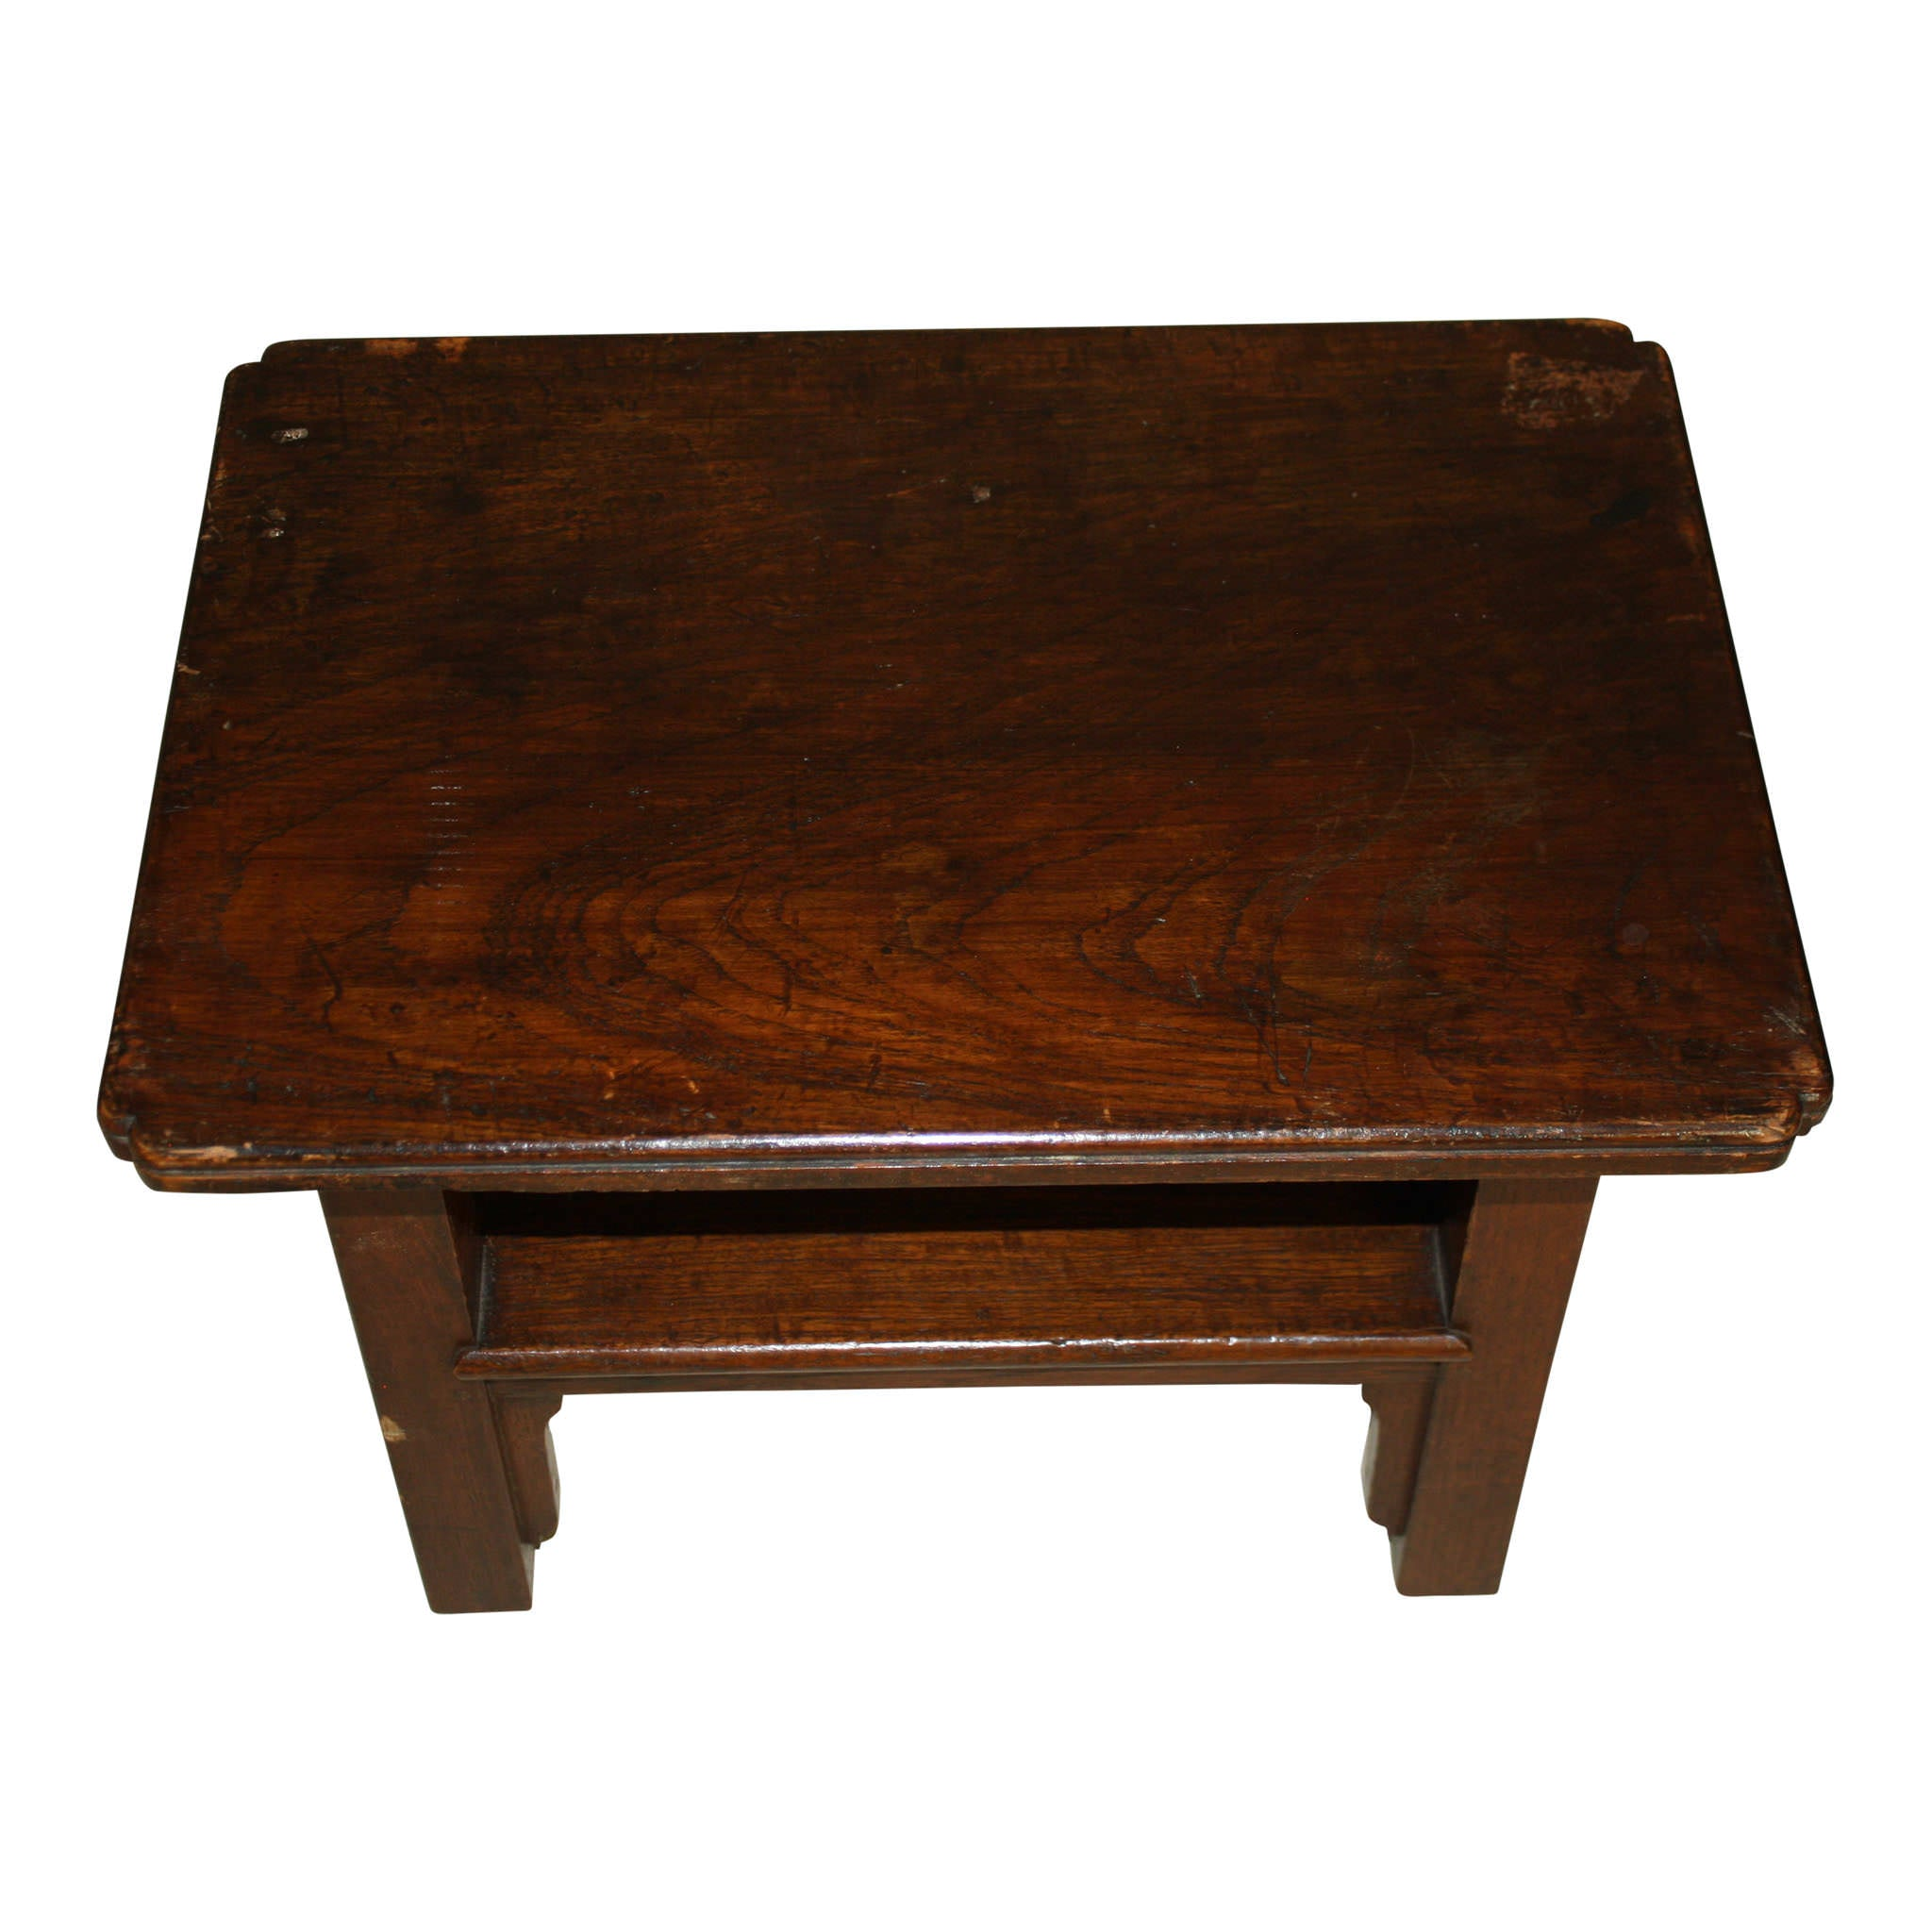 Rectangular Wood Stool with Lower Shelf